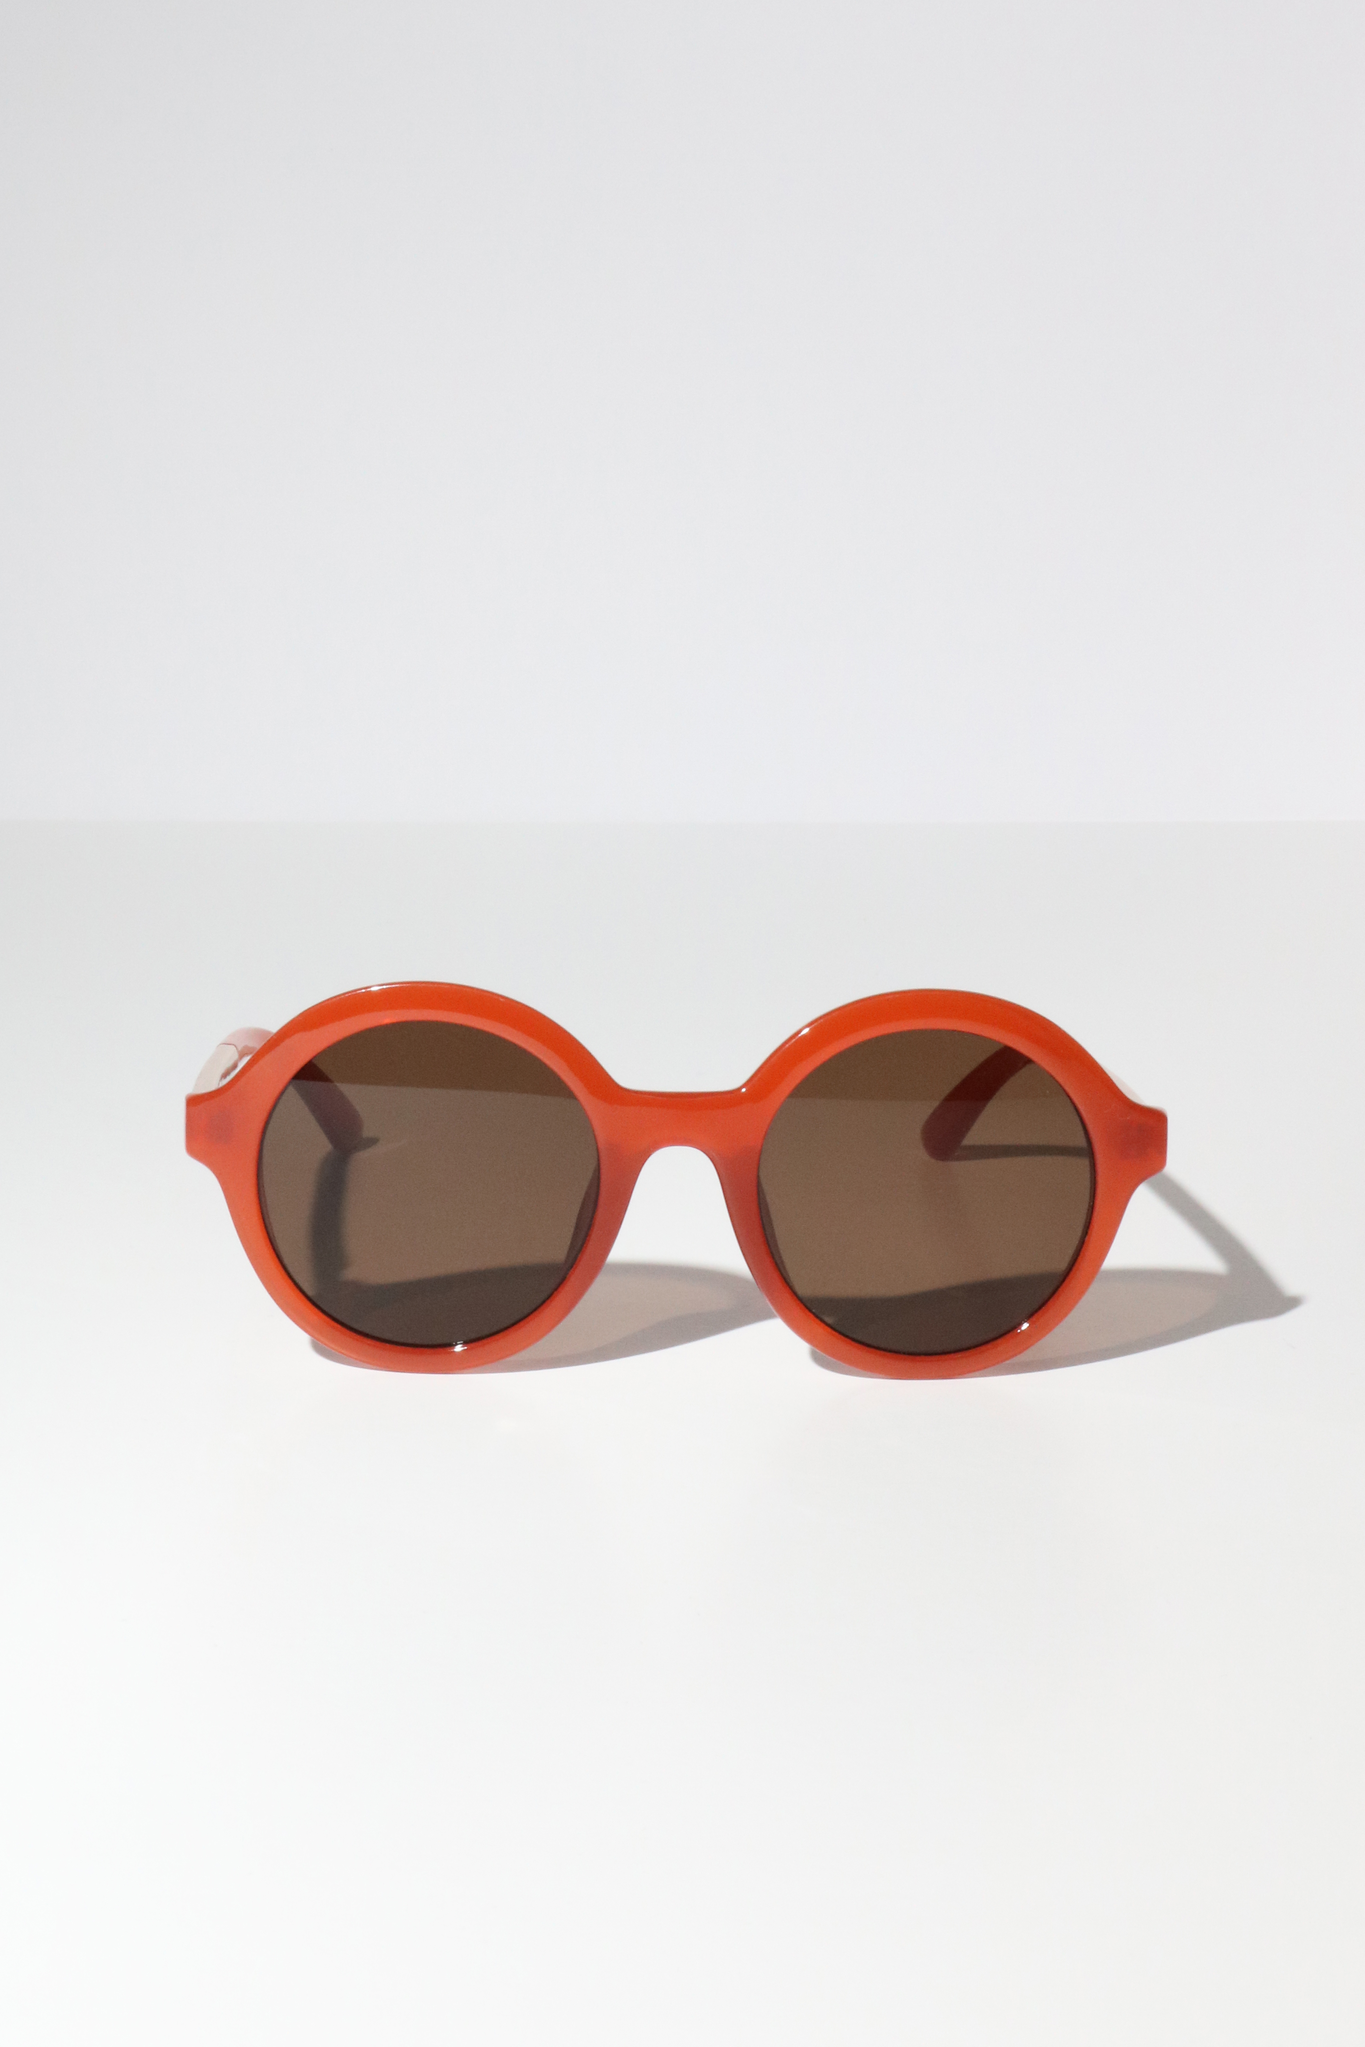 Reality Mind Bomb Sunglasses in Ochre